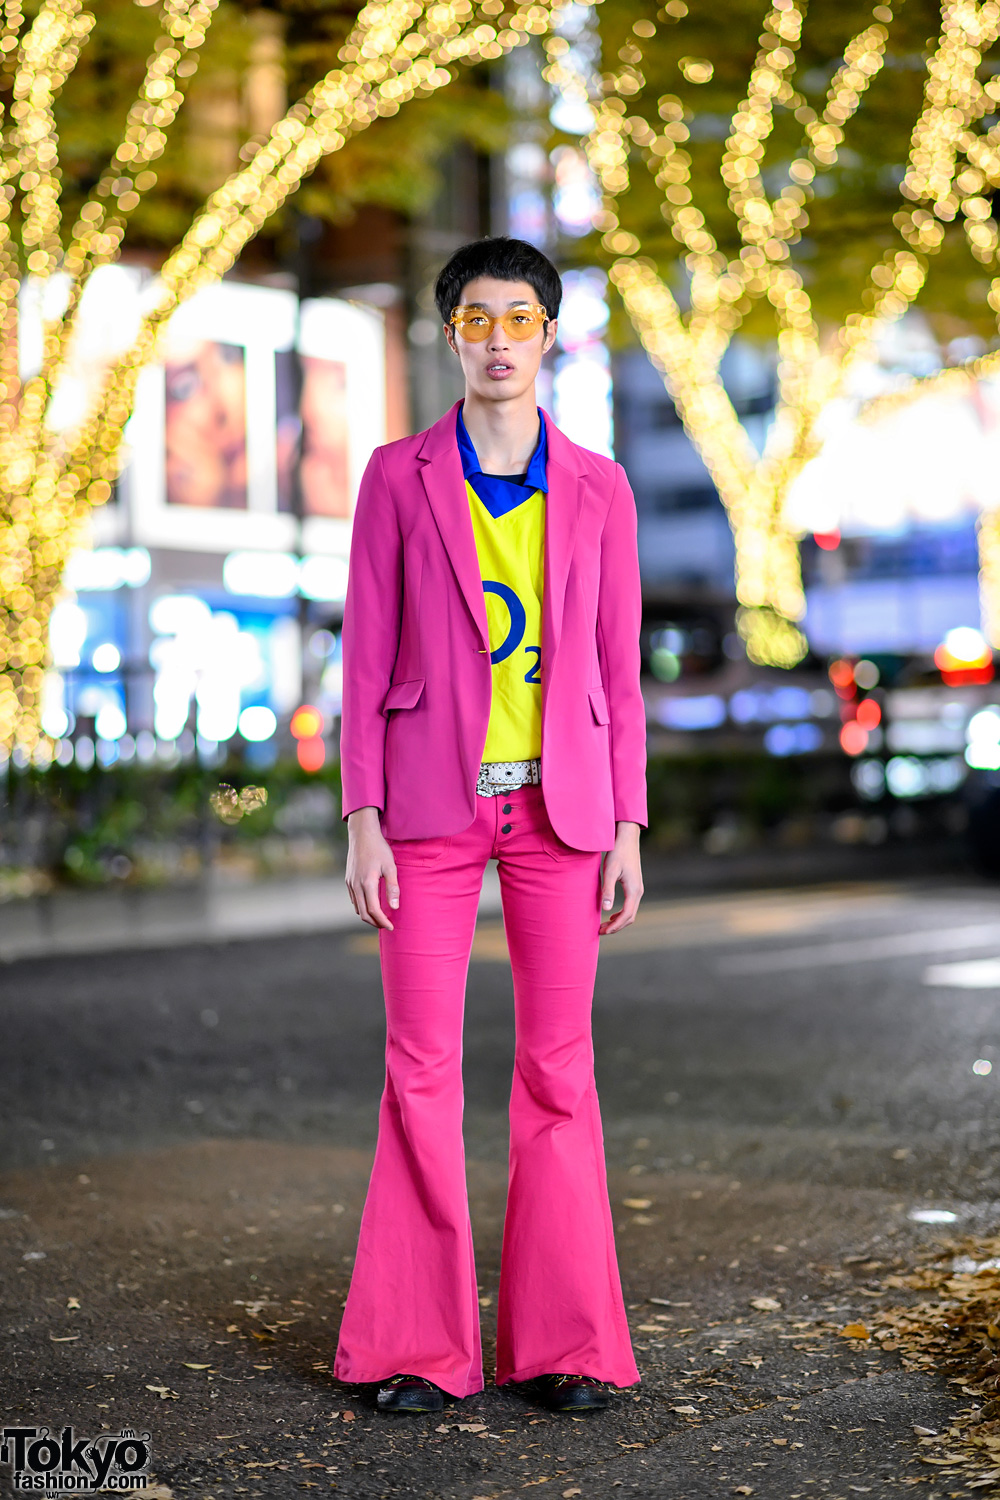 Pink Suit With Flare Pants, Yellow Arsenal O2 Shirt & Batman Sneakers in Harajuku